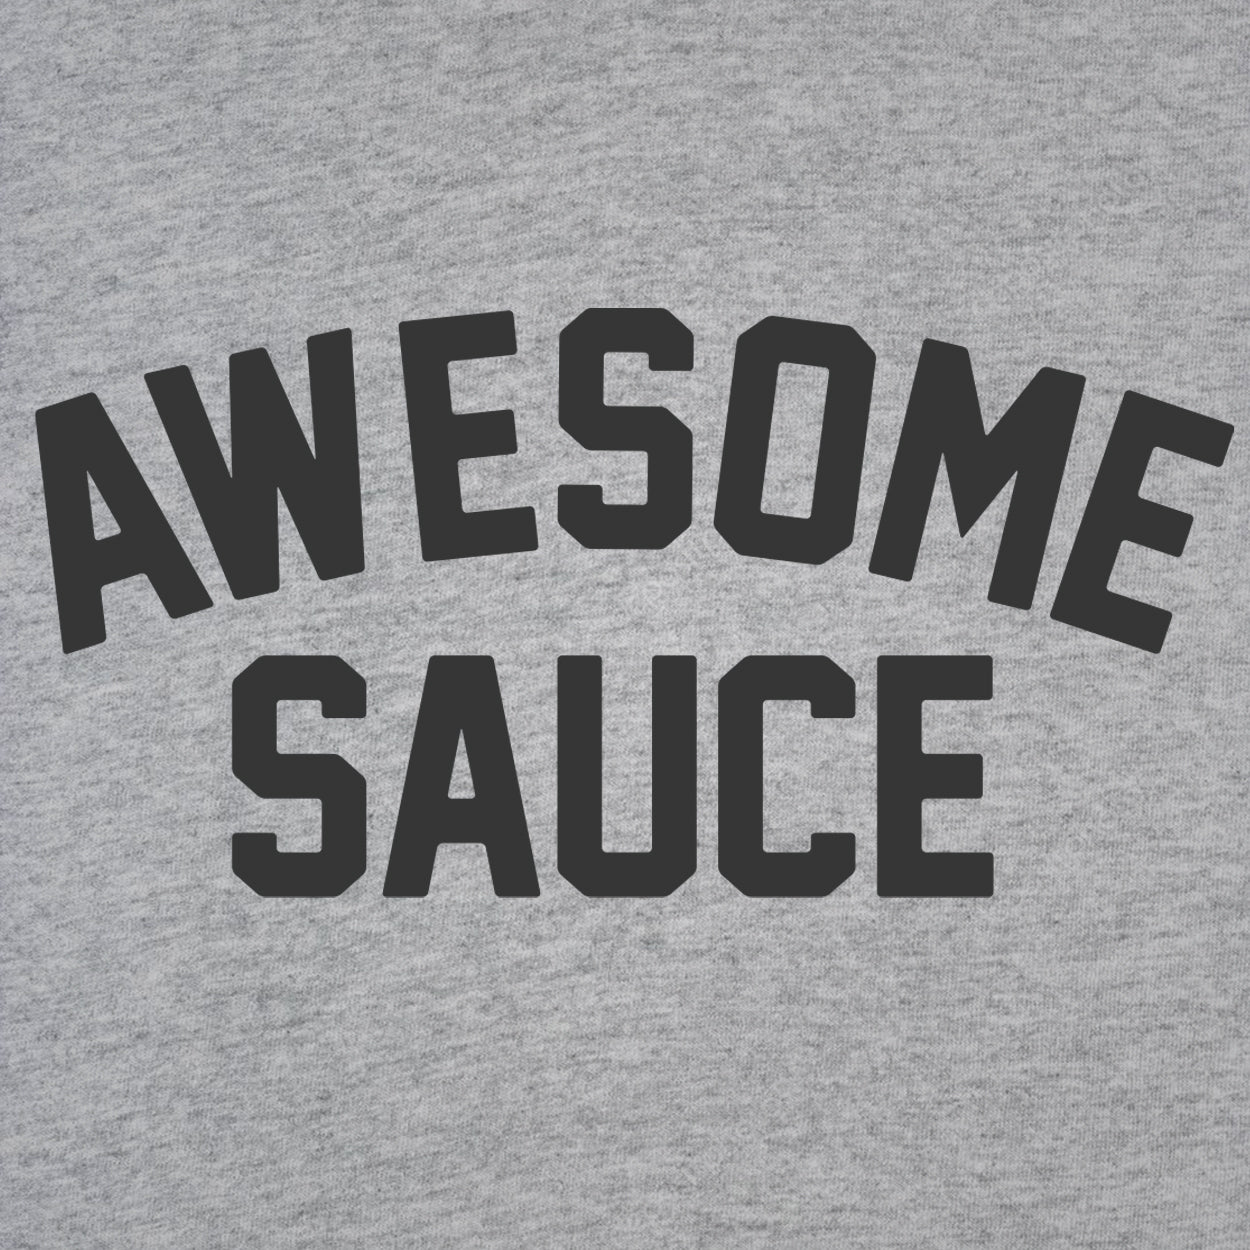 Awesome sauce - DonkeyTees